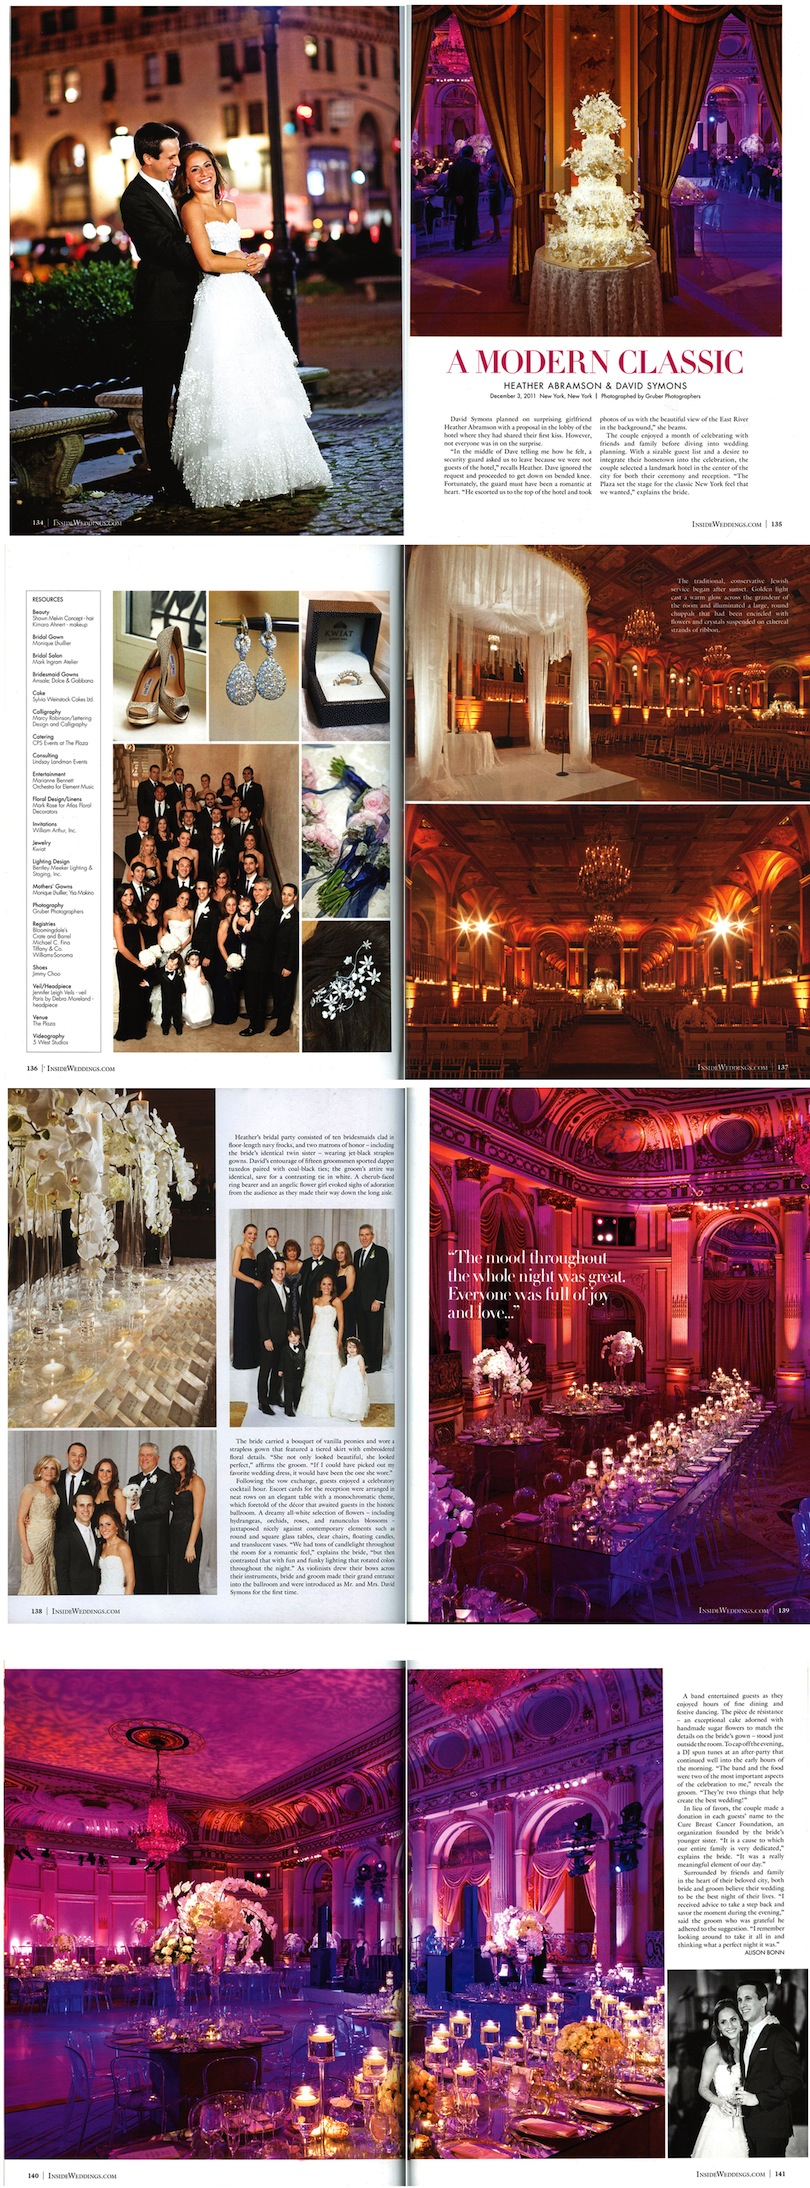 Gruber Photographers featured in Inside Weddings